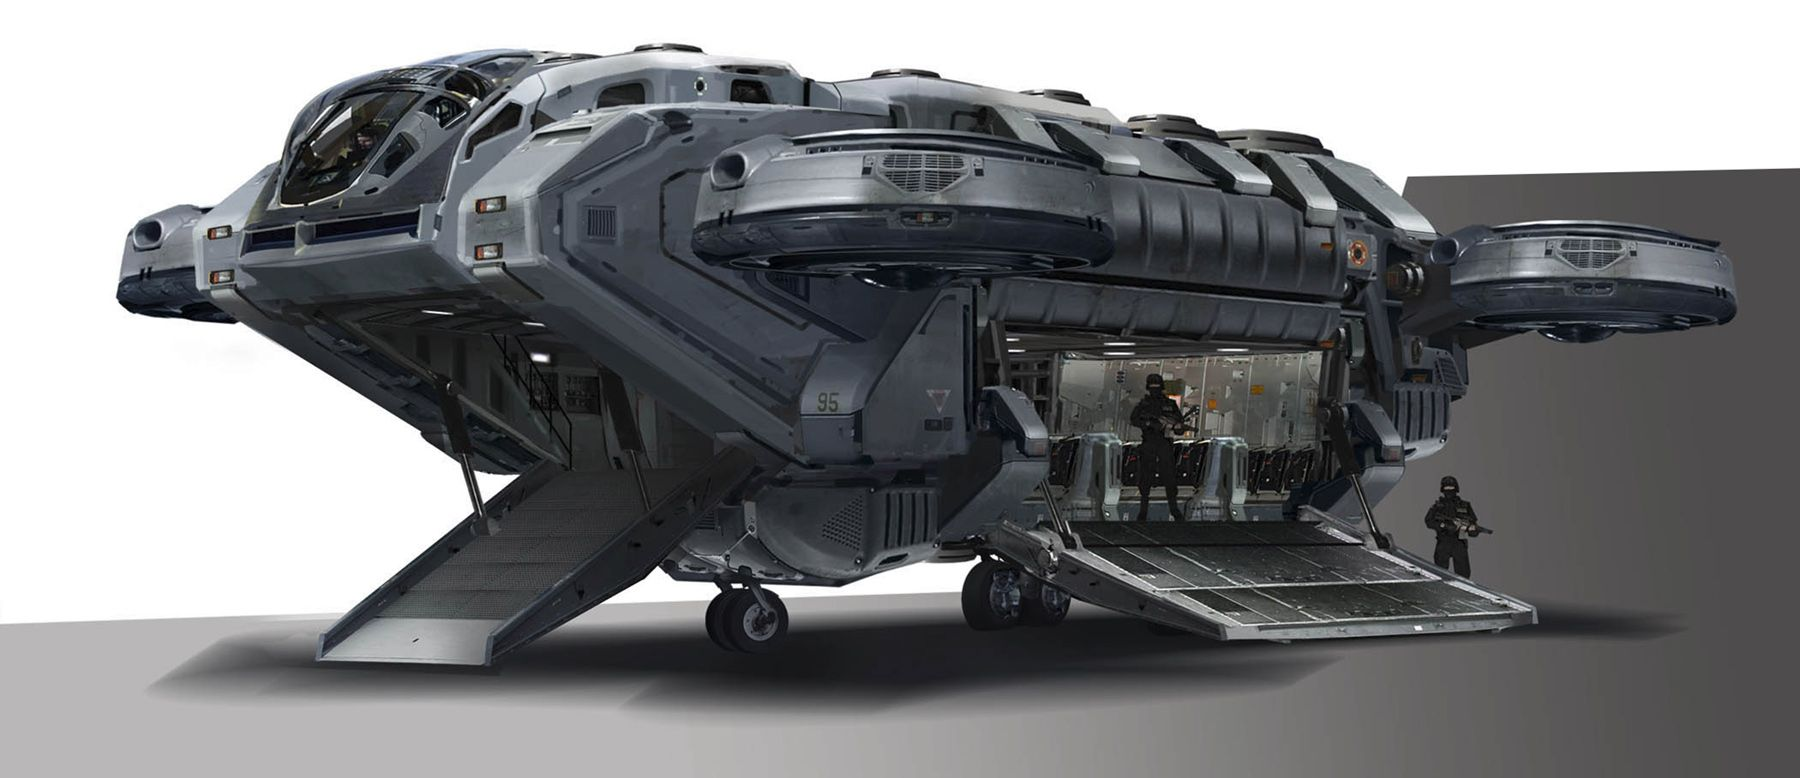 Concept Ships Avengers Age Of Ultron Concept Art By